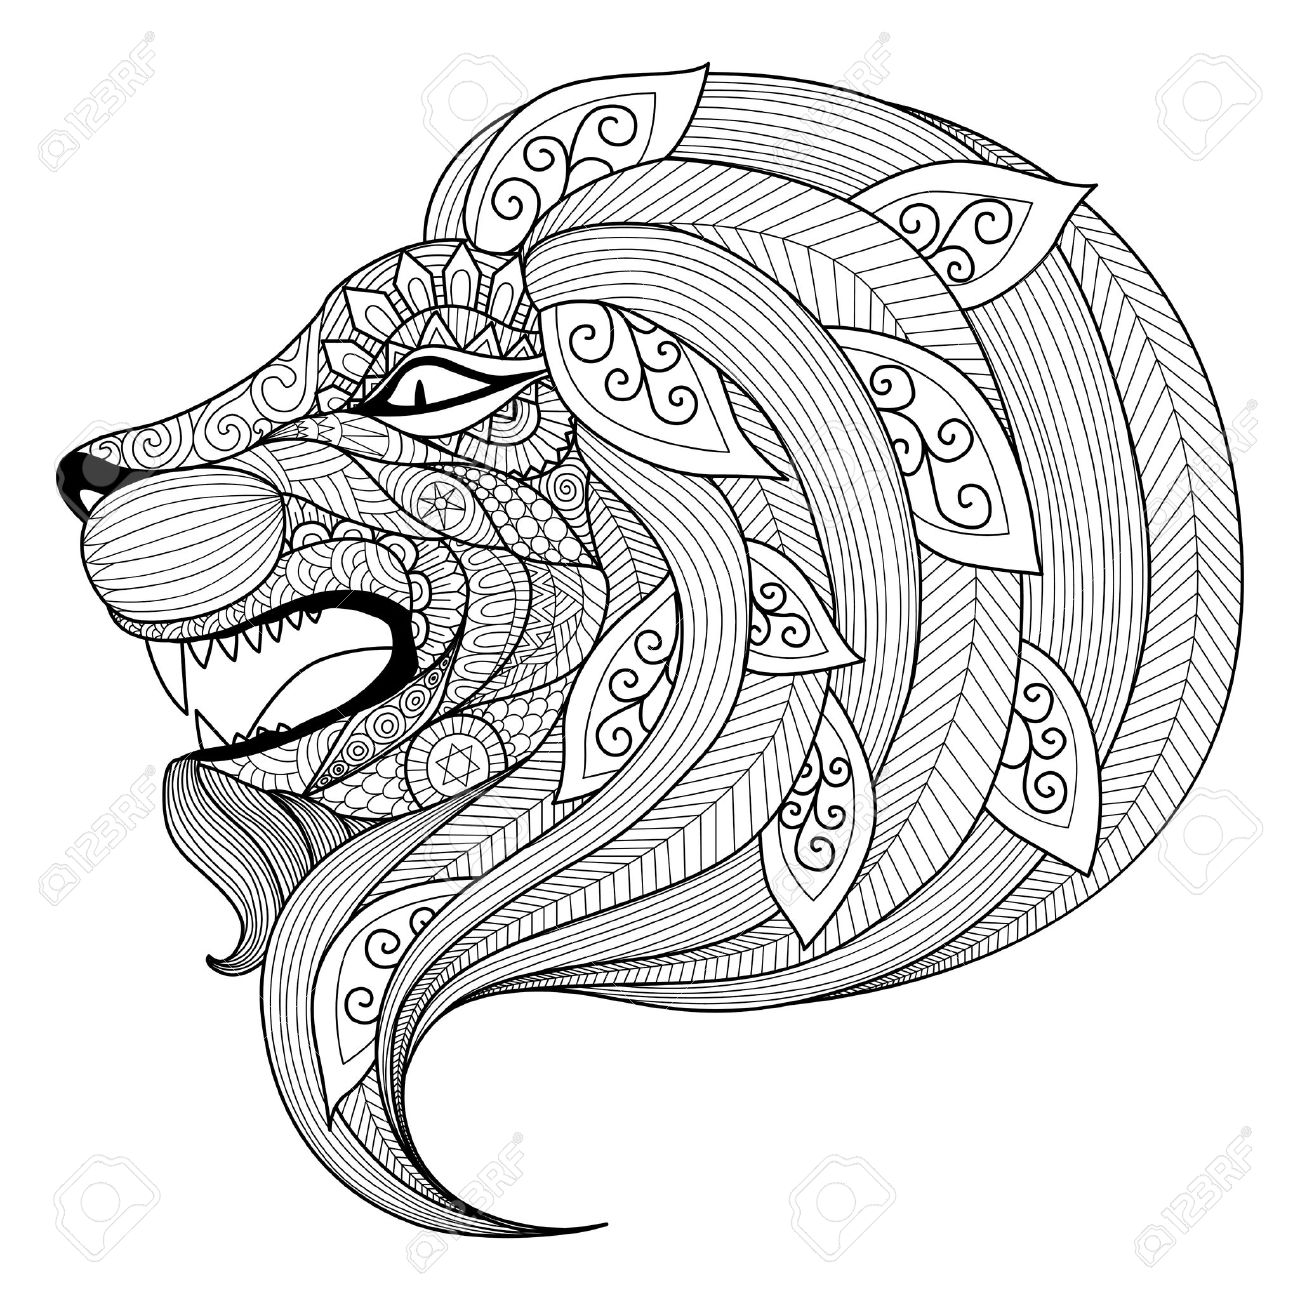 1300x1300 Drawing Angry Lion For Coloring Book For Adult Royalty Free